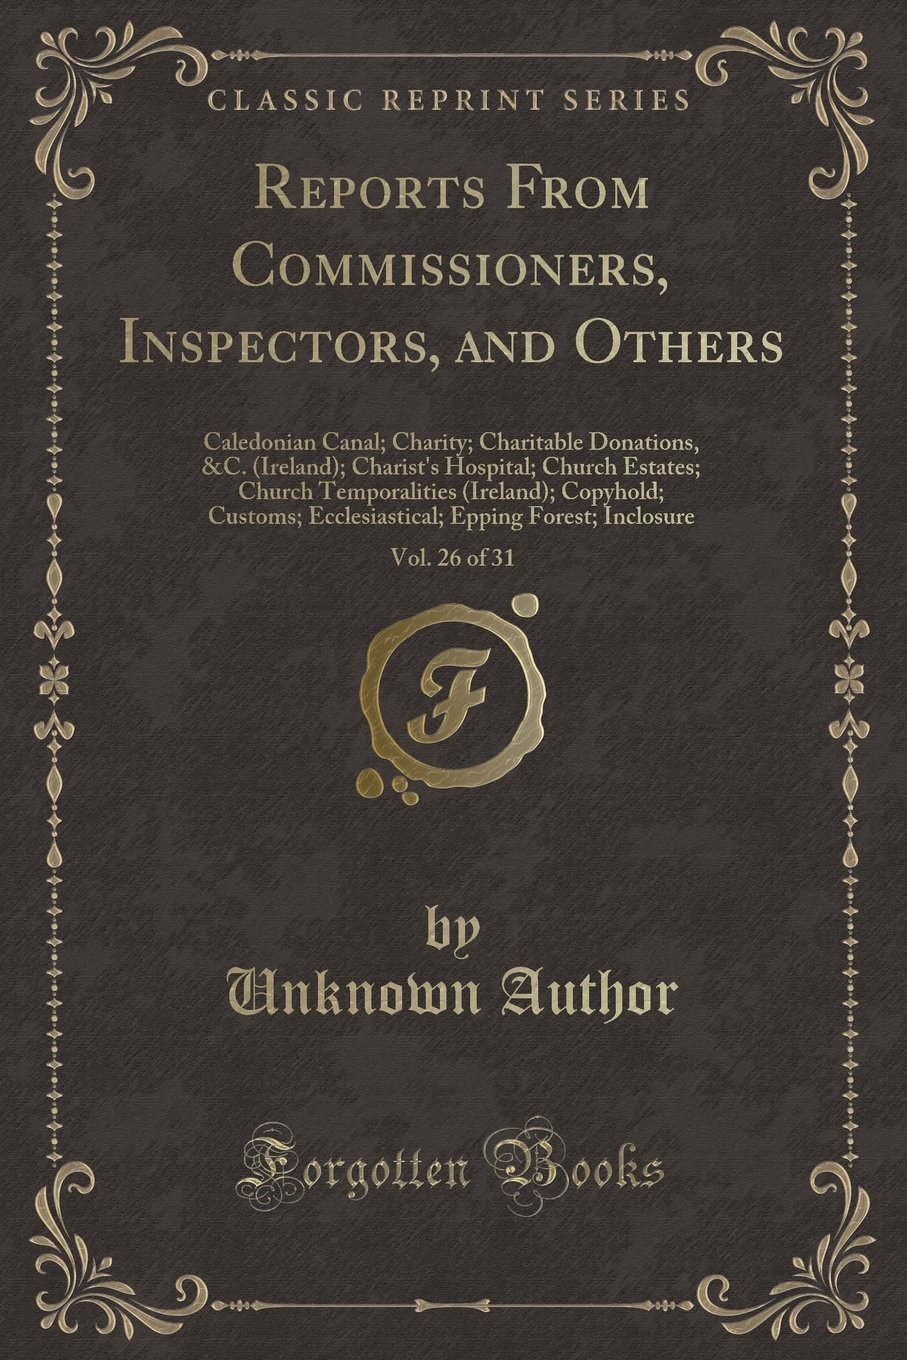 Reports From Commissioners, Inspectors, and Others, Vol. 26 of 31: Caledonian Canal; Charity; Charitable Donations, &C. (Ireland); Charist's Hospital; ... Ecclesiastical; Epping Forest; Inclos ebook